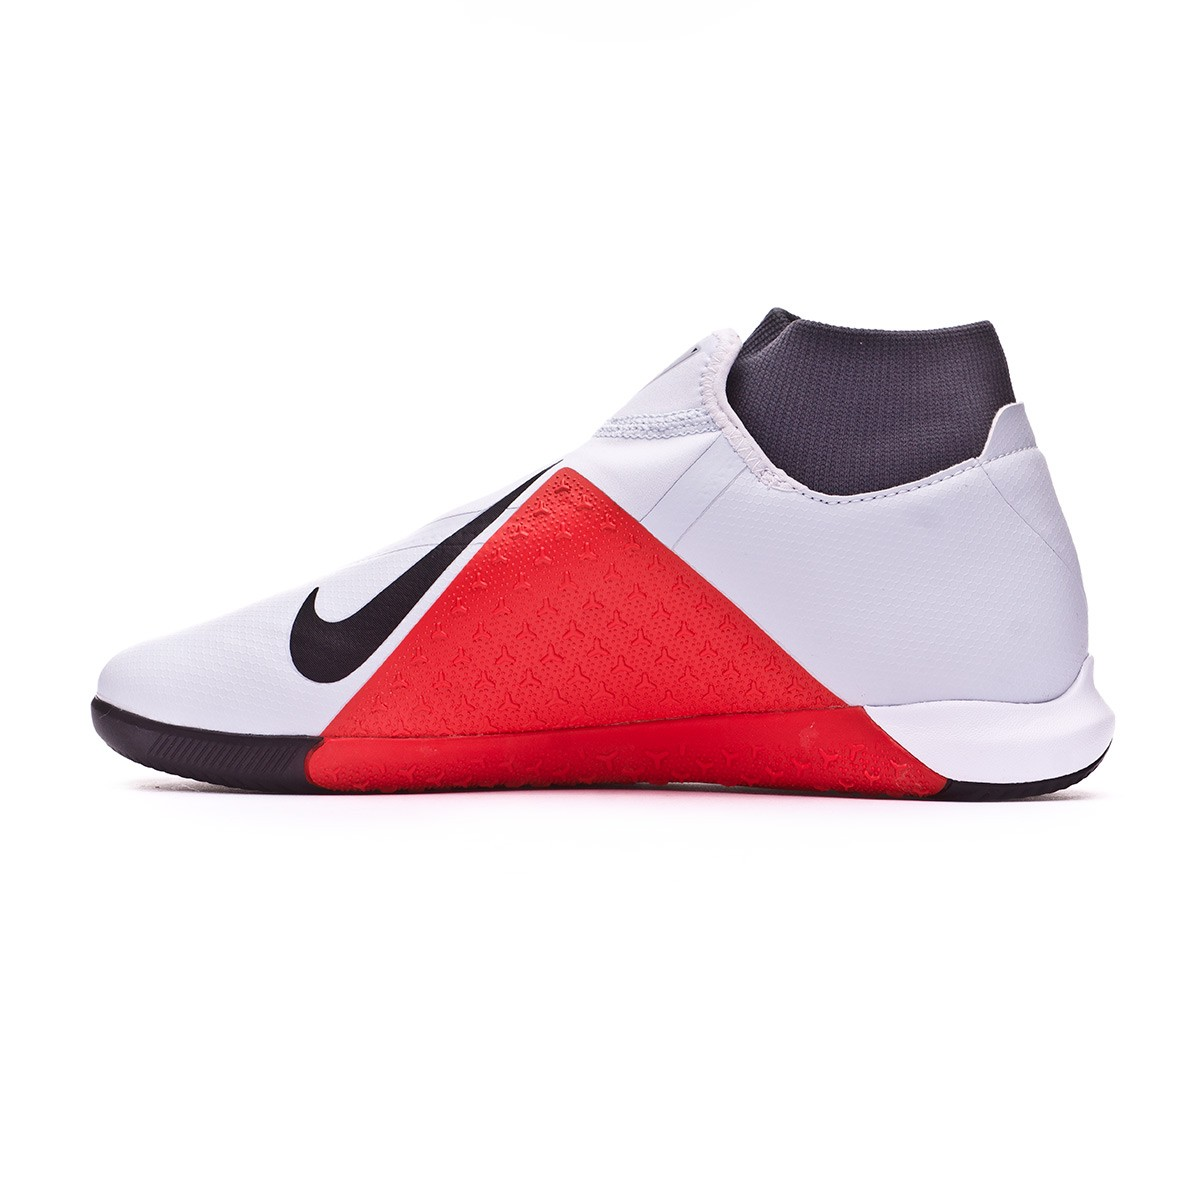 Futsal Boot Nike Phantom Vision Academy DF IC Pure platinum-Black-Light  crimson-Dark grey - Football store Fútbol Emotion 29a825d06